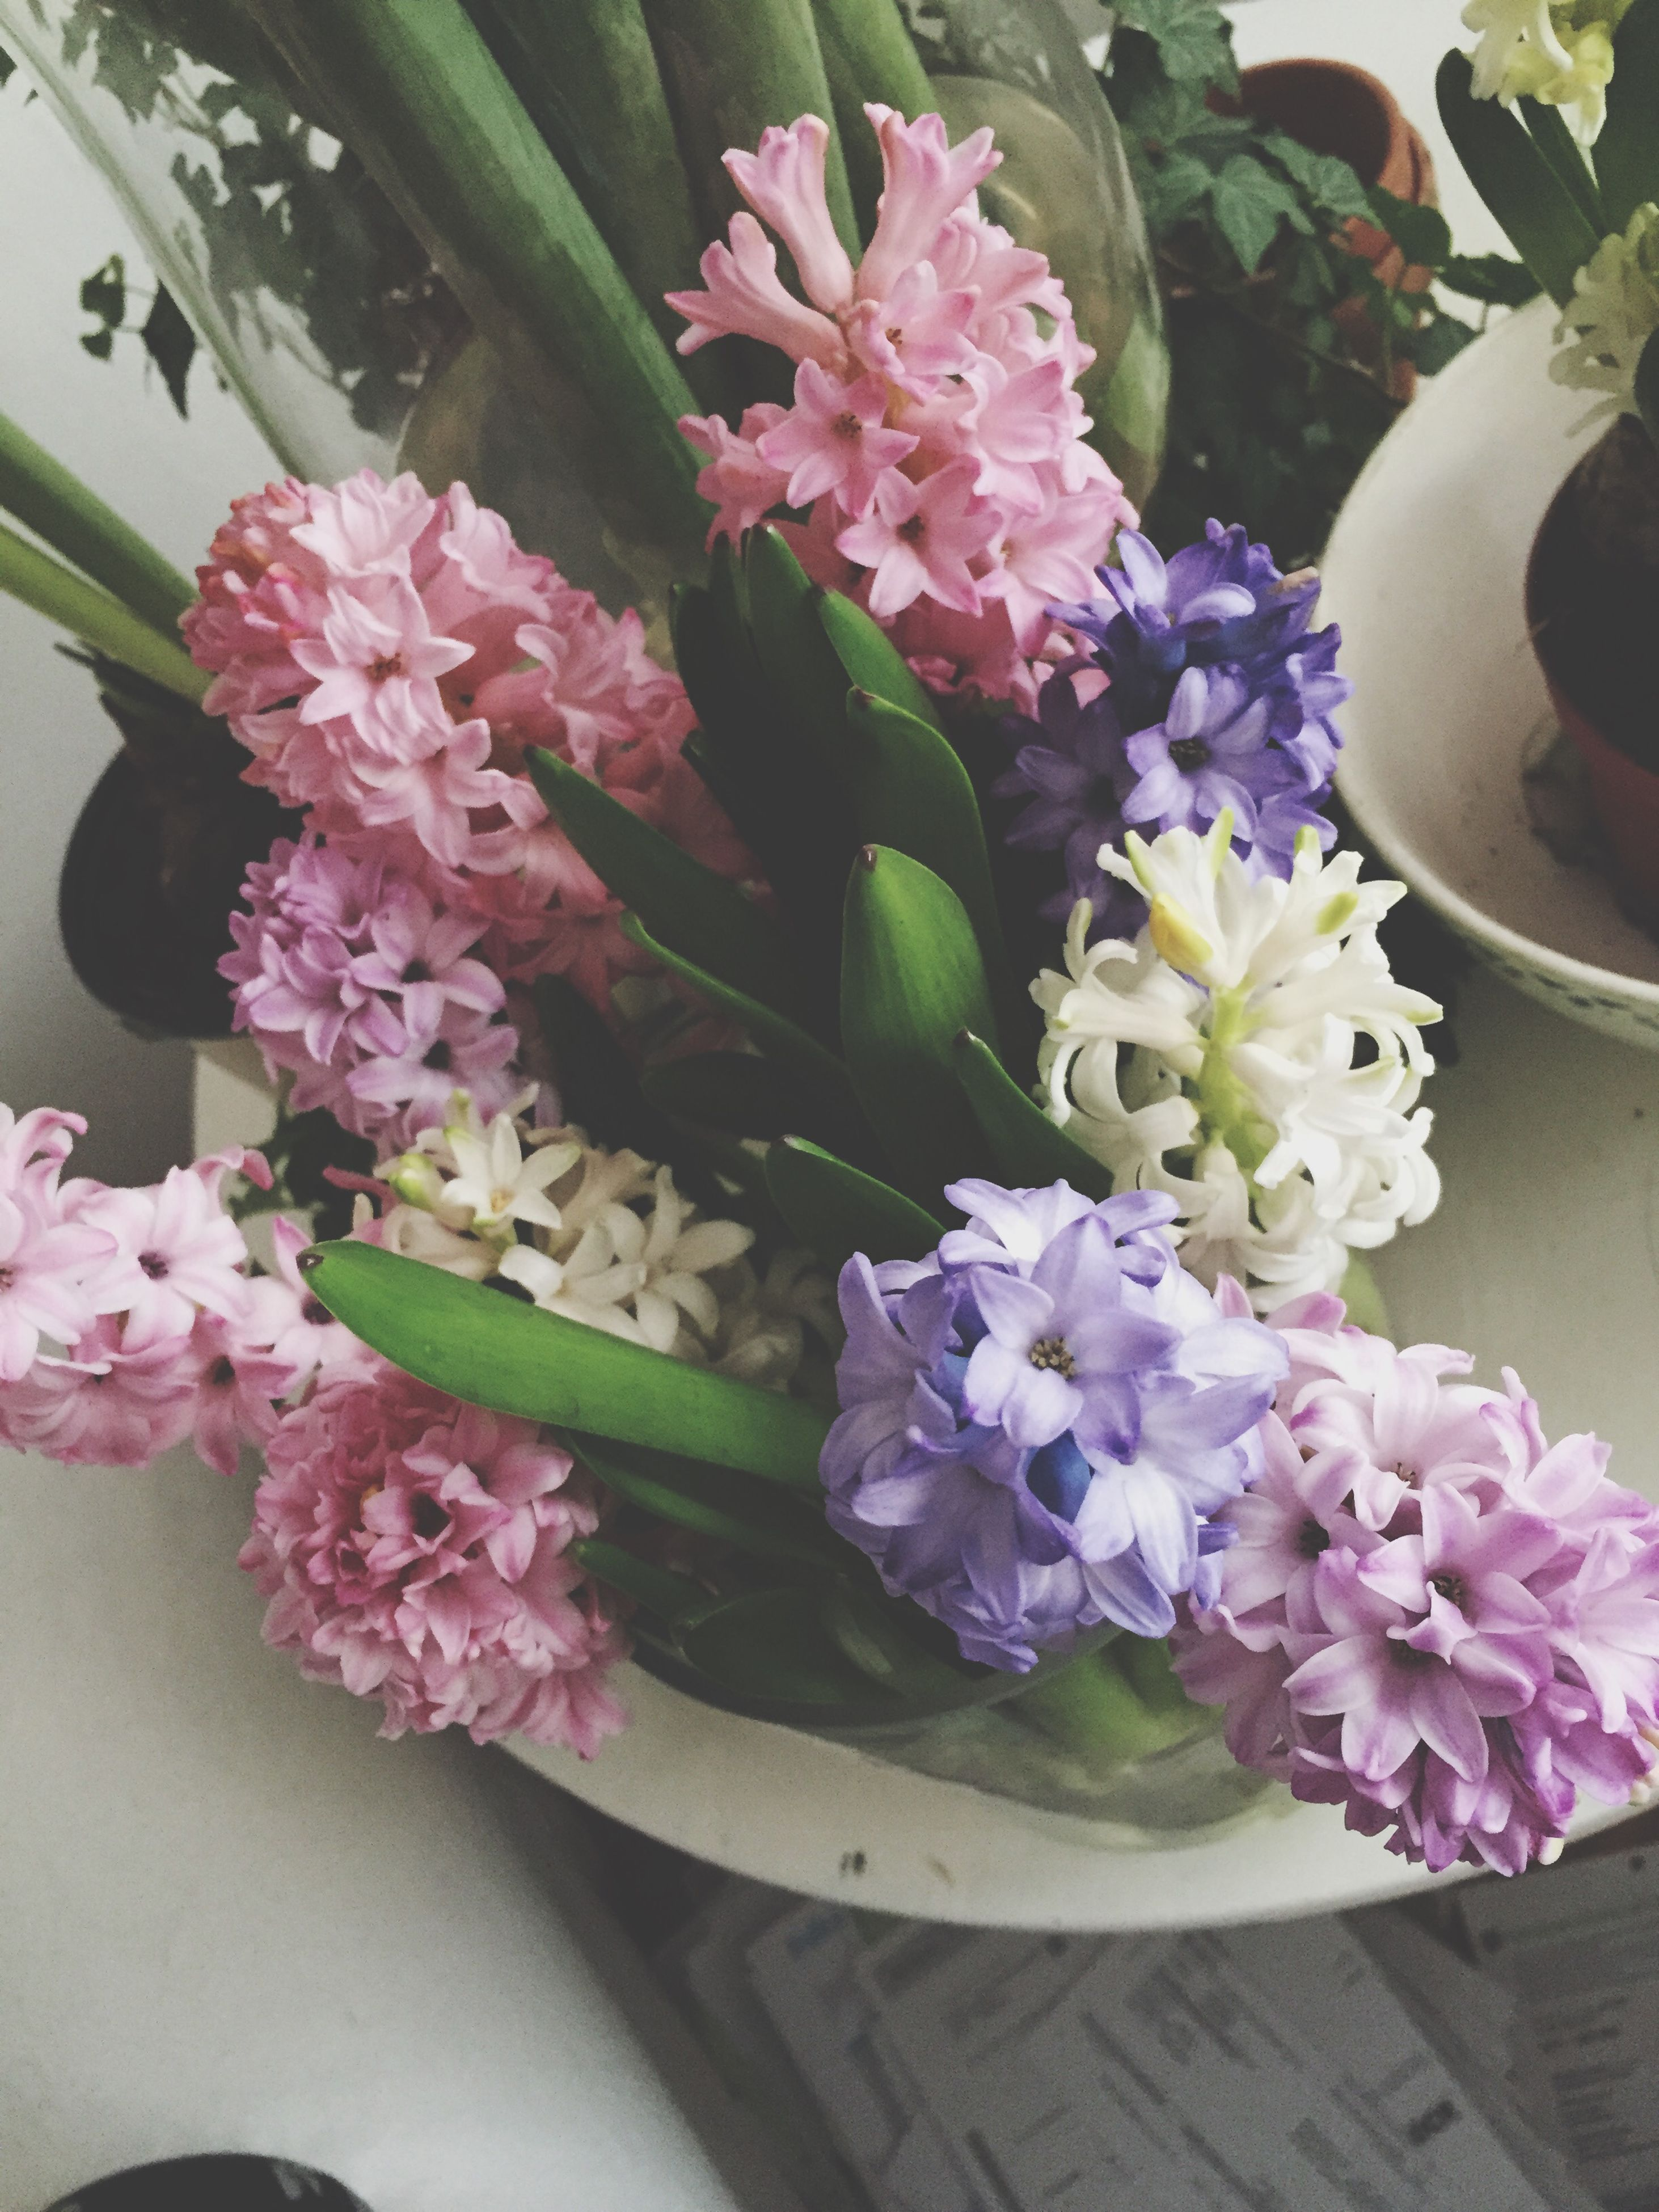 flower, freshness, fragility, petal, growth, beauty in nature, pink color, flower head, indoors, potted plant, plant, vase, bunch of flowers, nature, high angle view, close-up, blooming, leaf, bouquet, flower pot